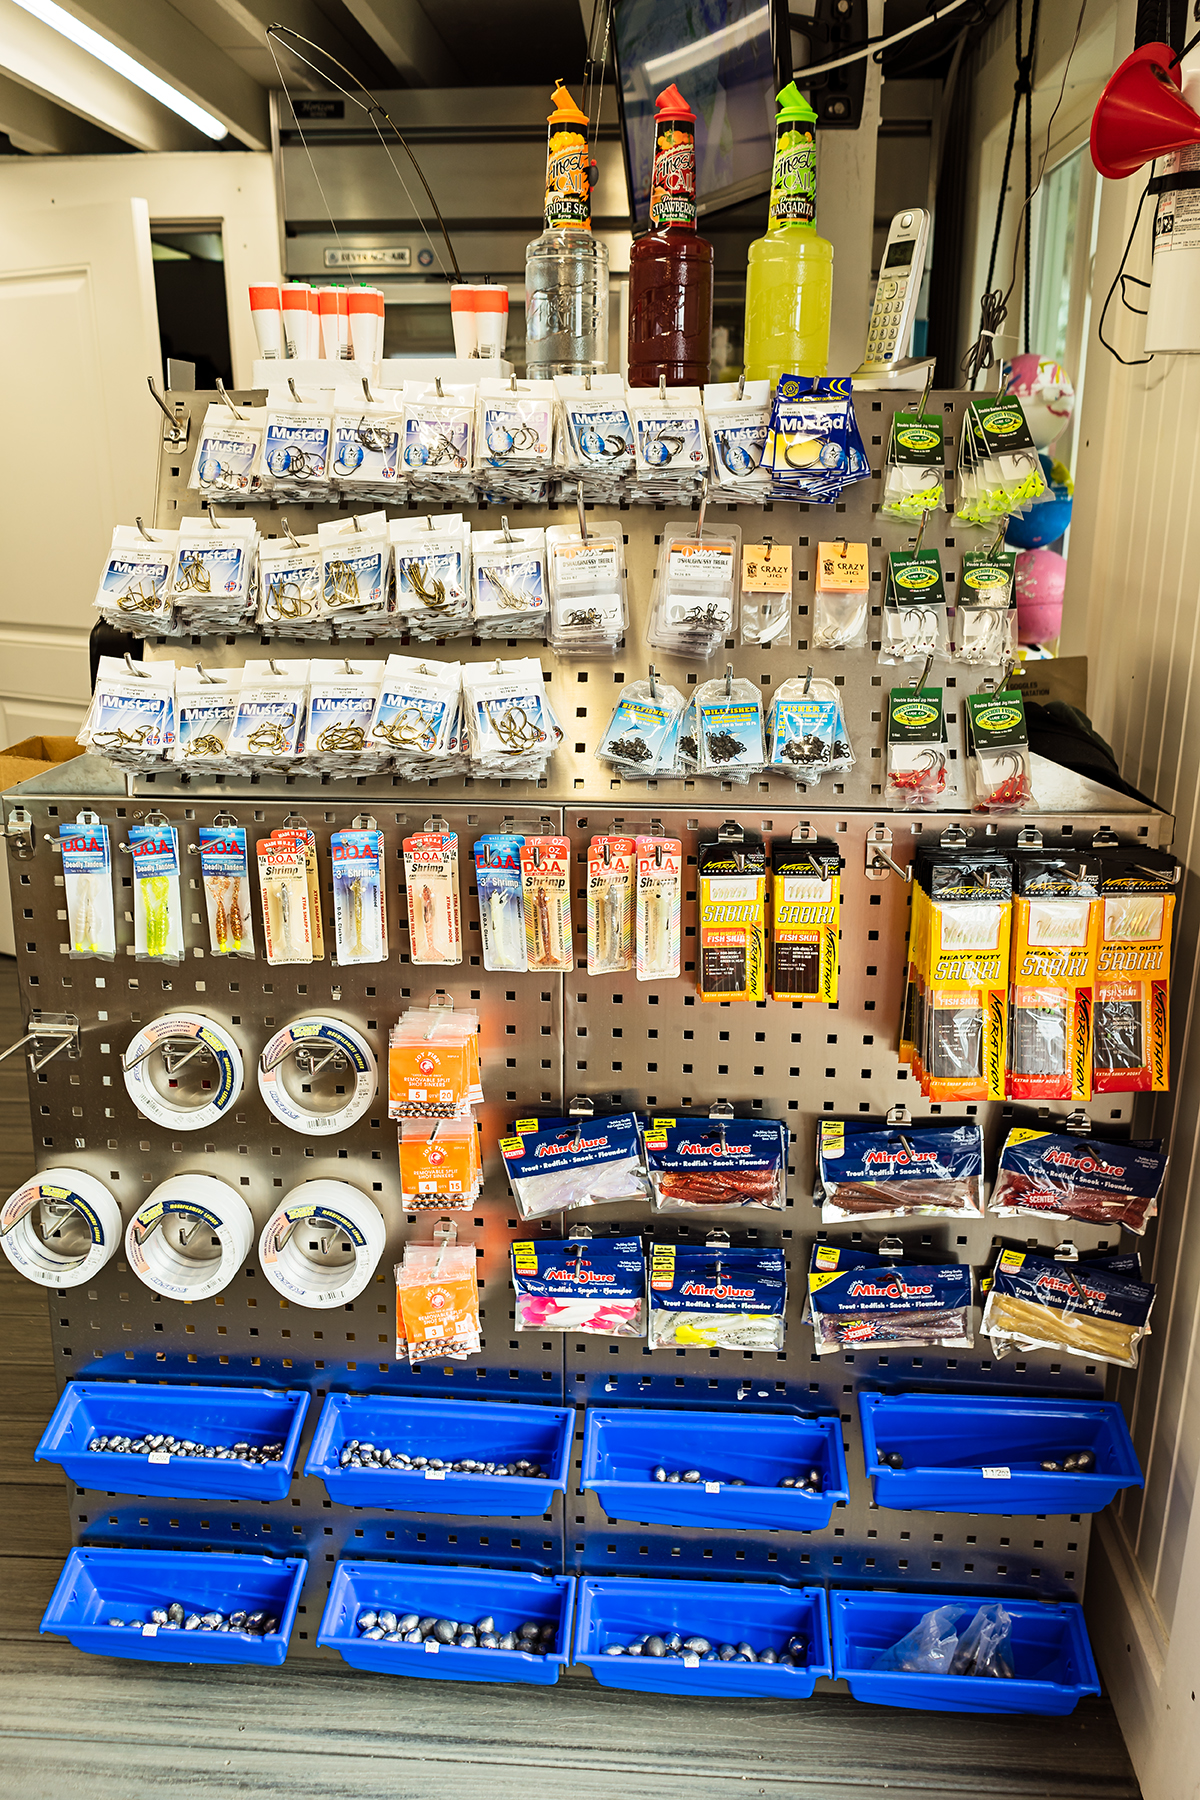 Want to fish off the dock but need more bait, line, or hooks? Wild Seafood also sells tackle items as well.